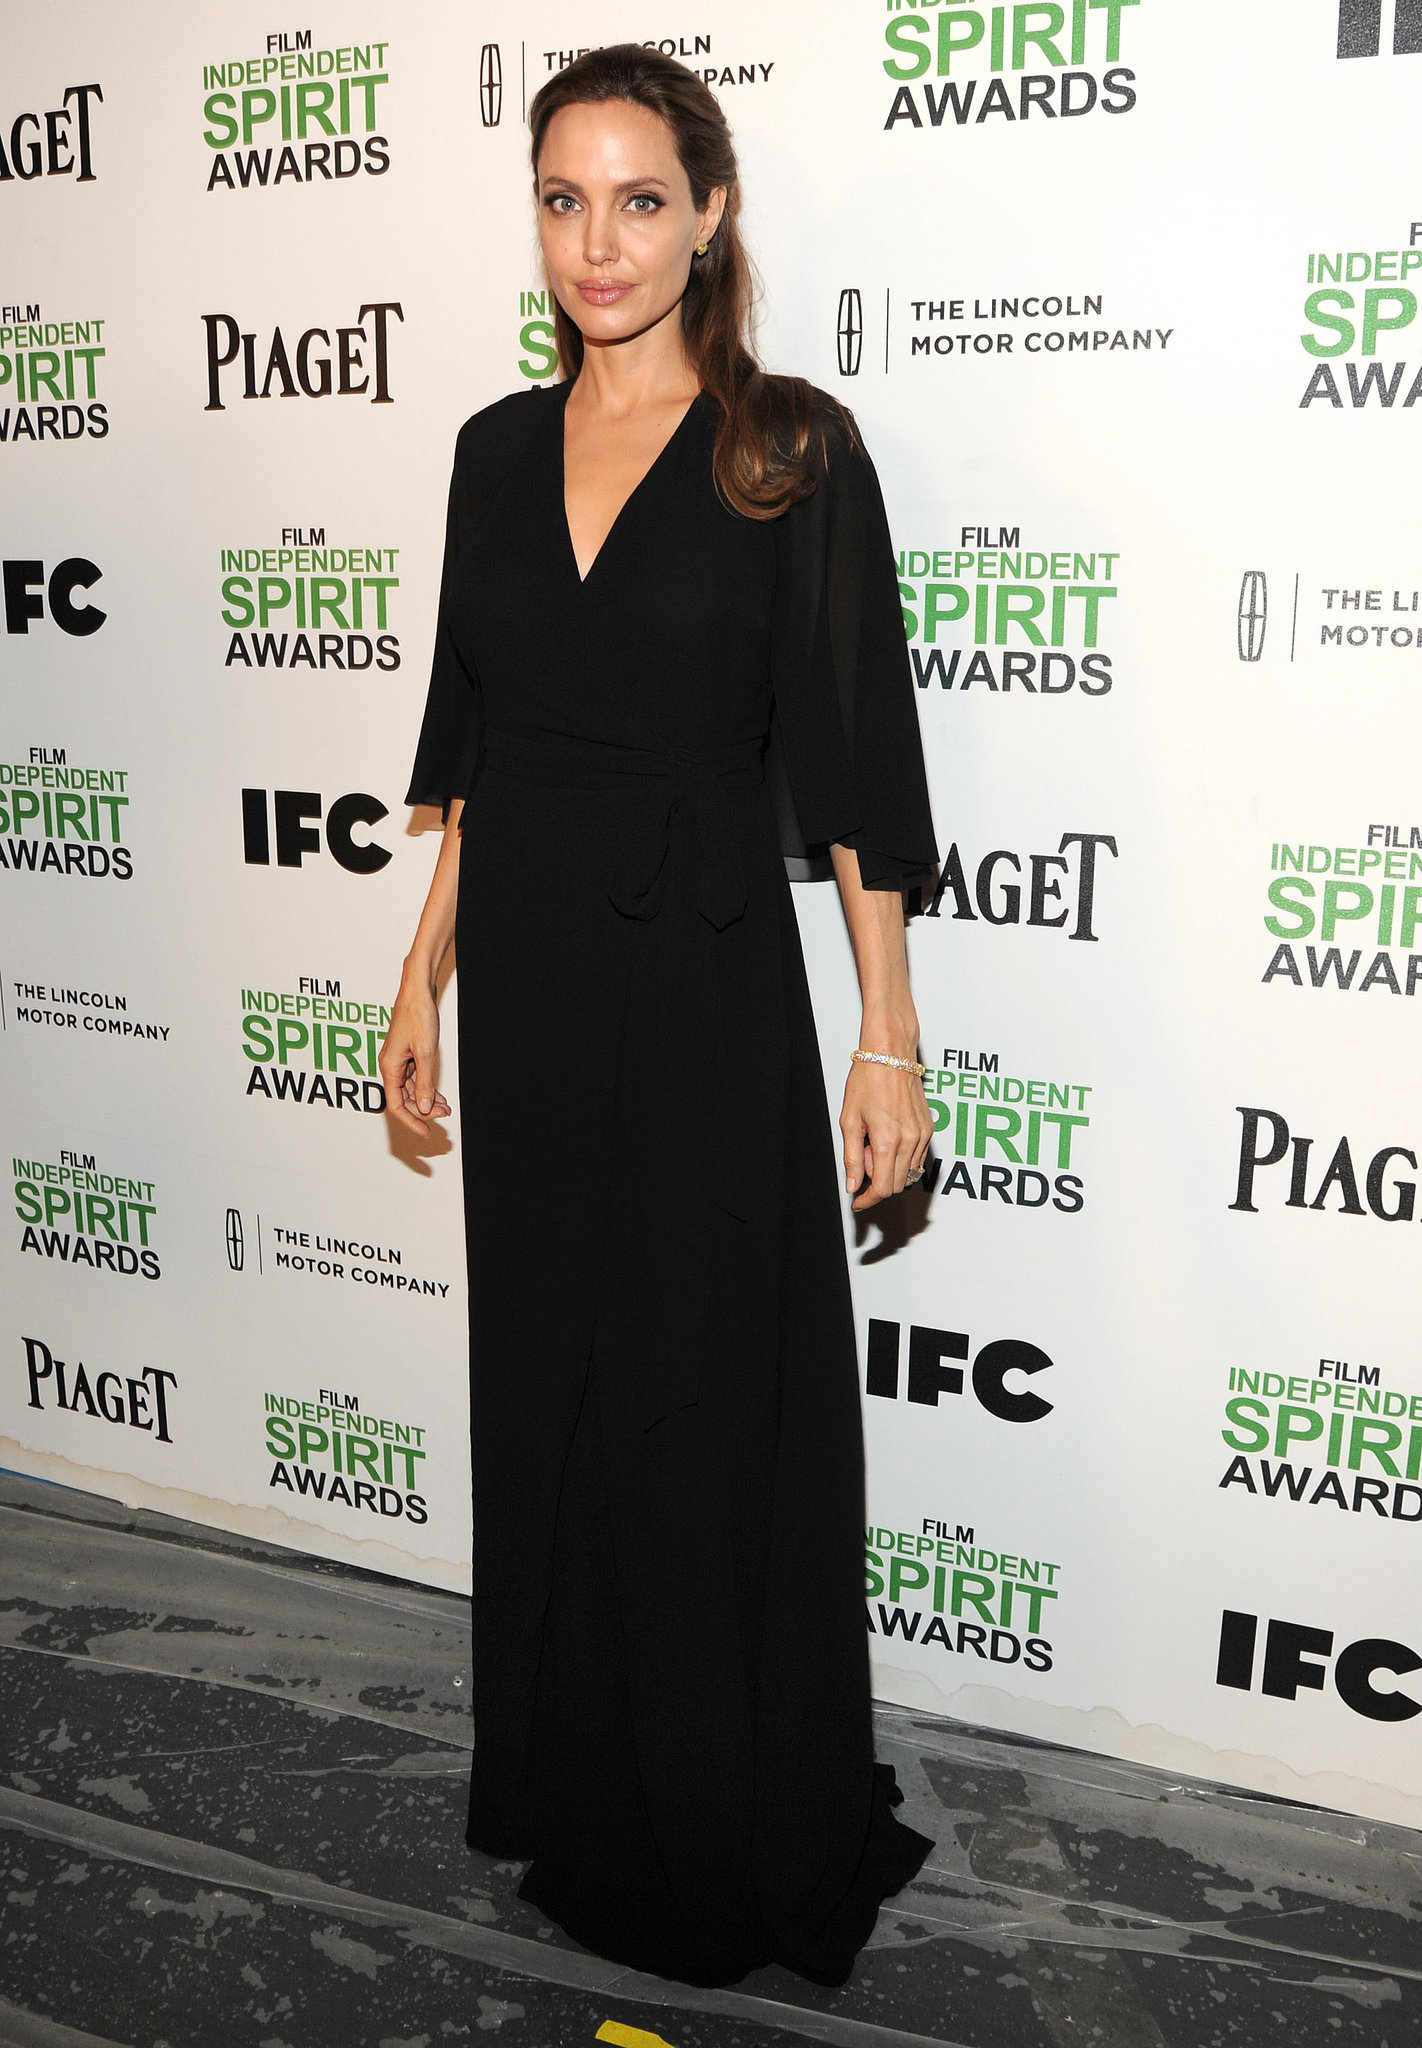 Angelina Jolie at the 2014 Spirit Awards